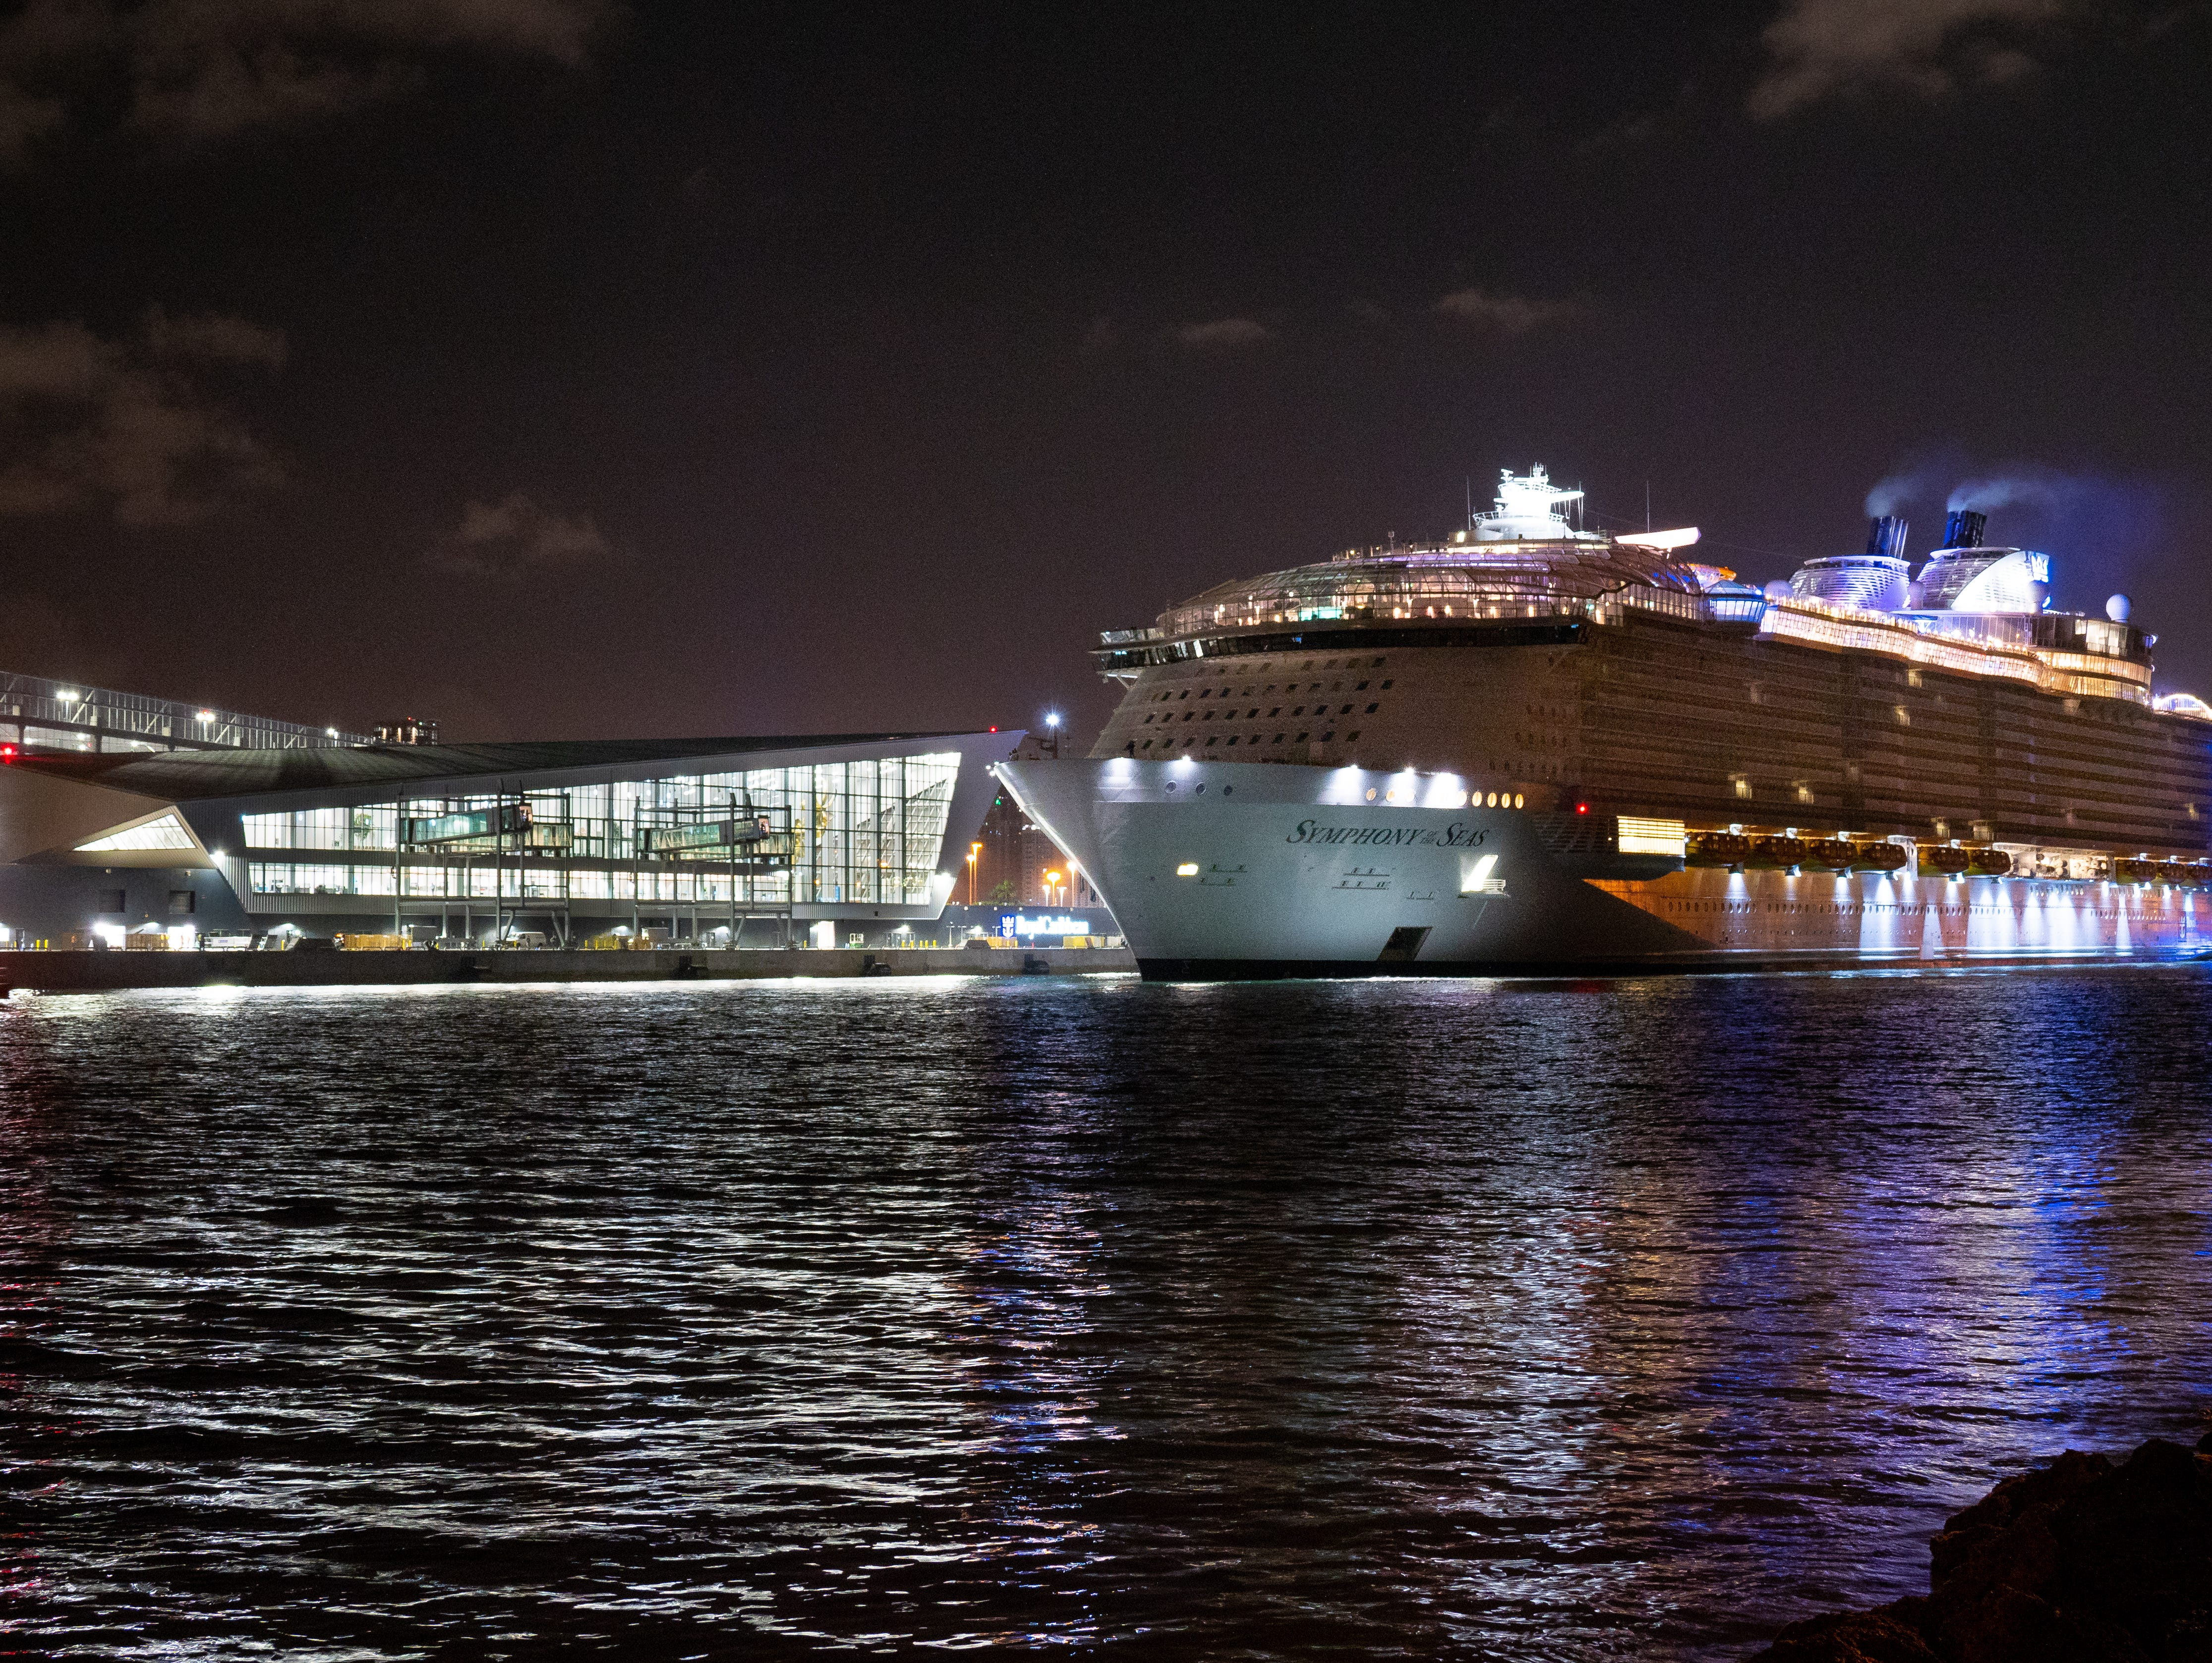 Royal Caribbean's Symphony of the Seas docks at the Port of Miami's new Terminal A for the first time.